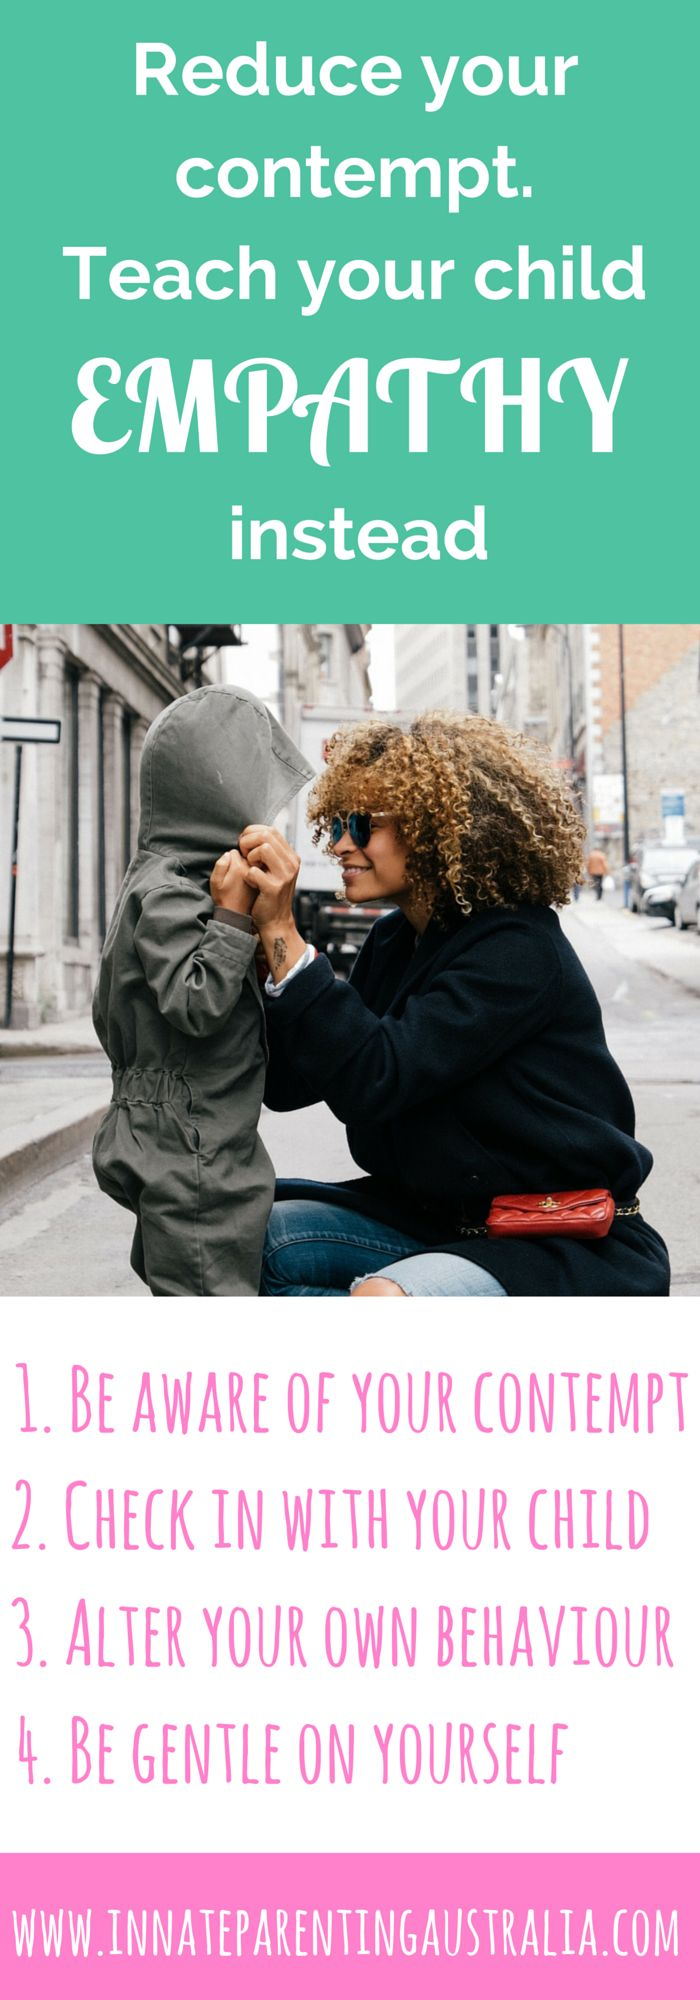 Why contempt can break your relationship with your child, and what to do instead. Stop the huffing, puffing and eye rolling - go for a gentle parenting approach and show empathy instead.